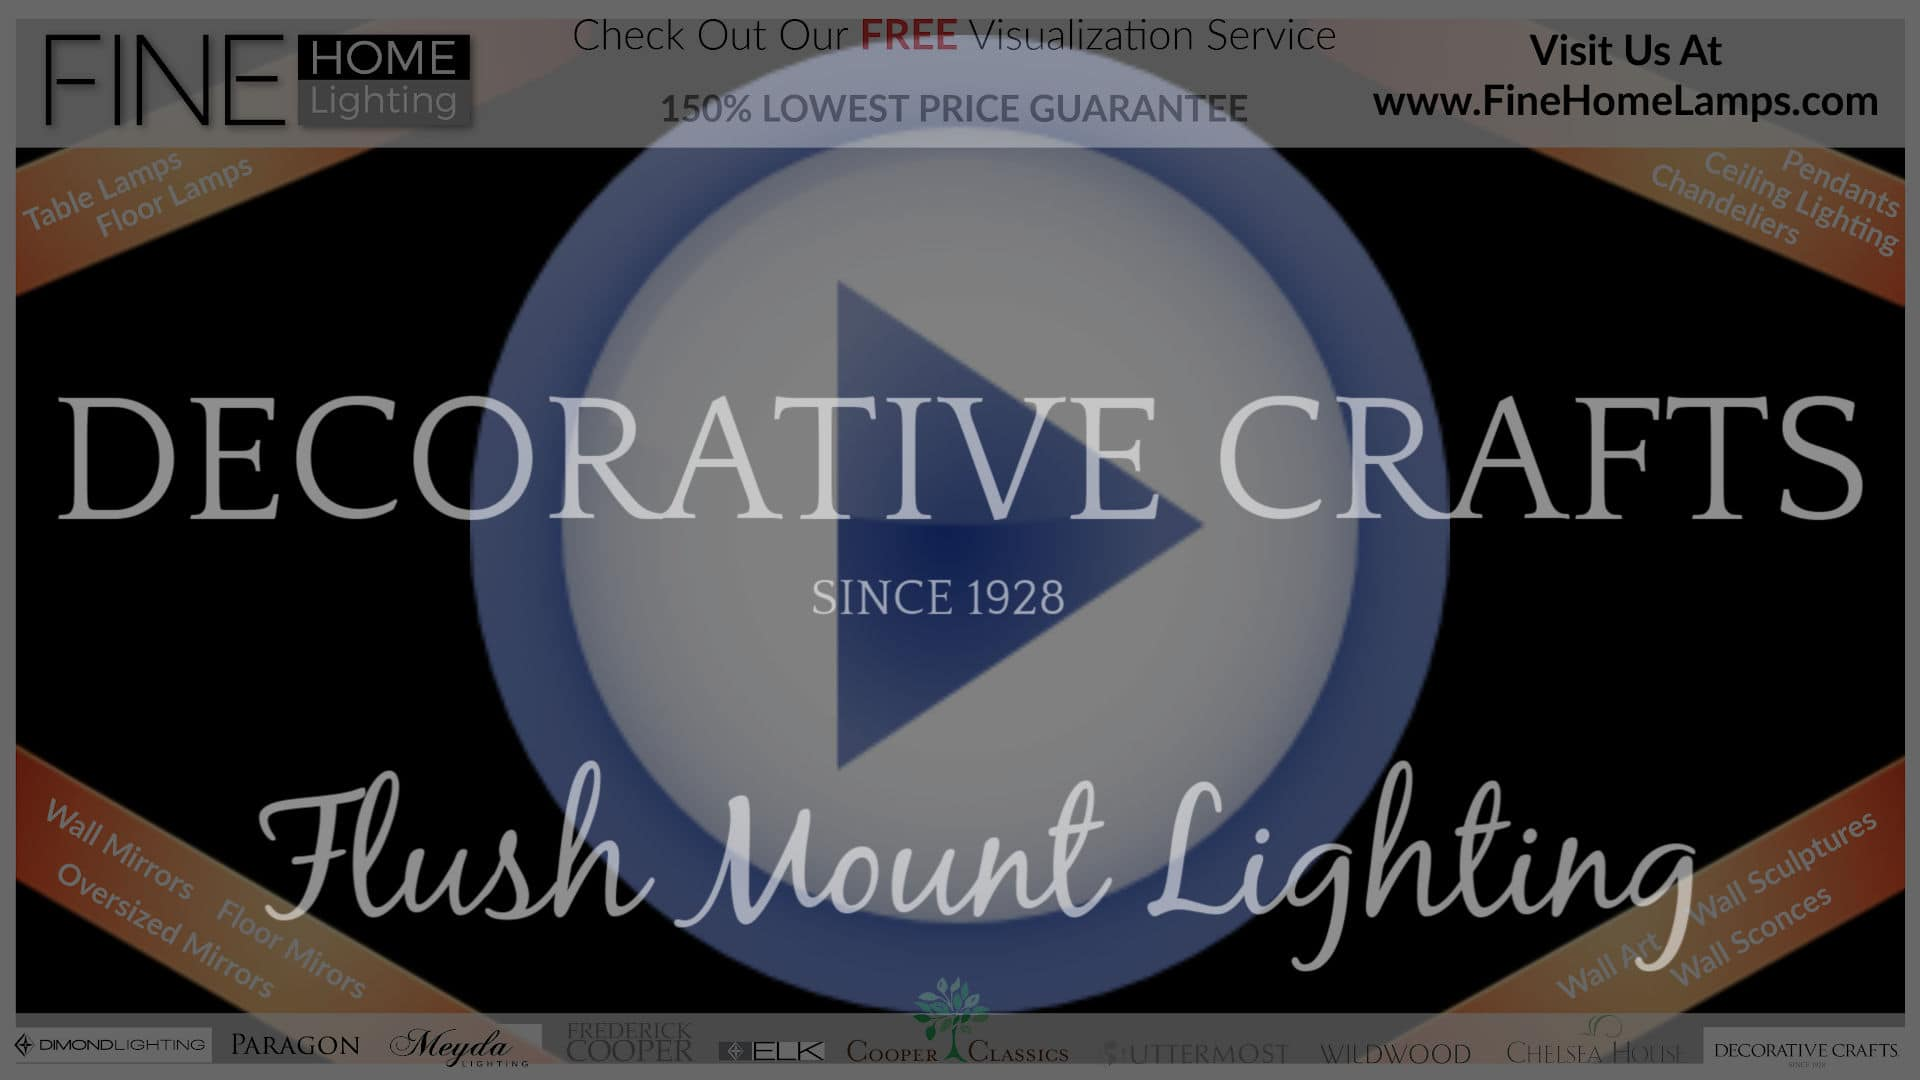 DECORATIVE-CRAFTS-FLUSH-MOUNT-LIGHTING-Thanks-for-watching-this-video-Get-an-additional-15-percent-off-your-next-purchase-Use-Coupon-Code-VIDEO